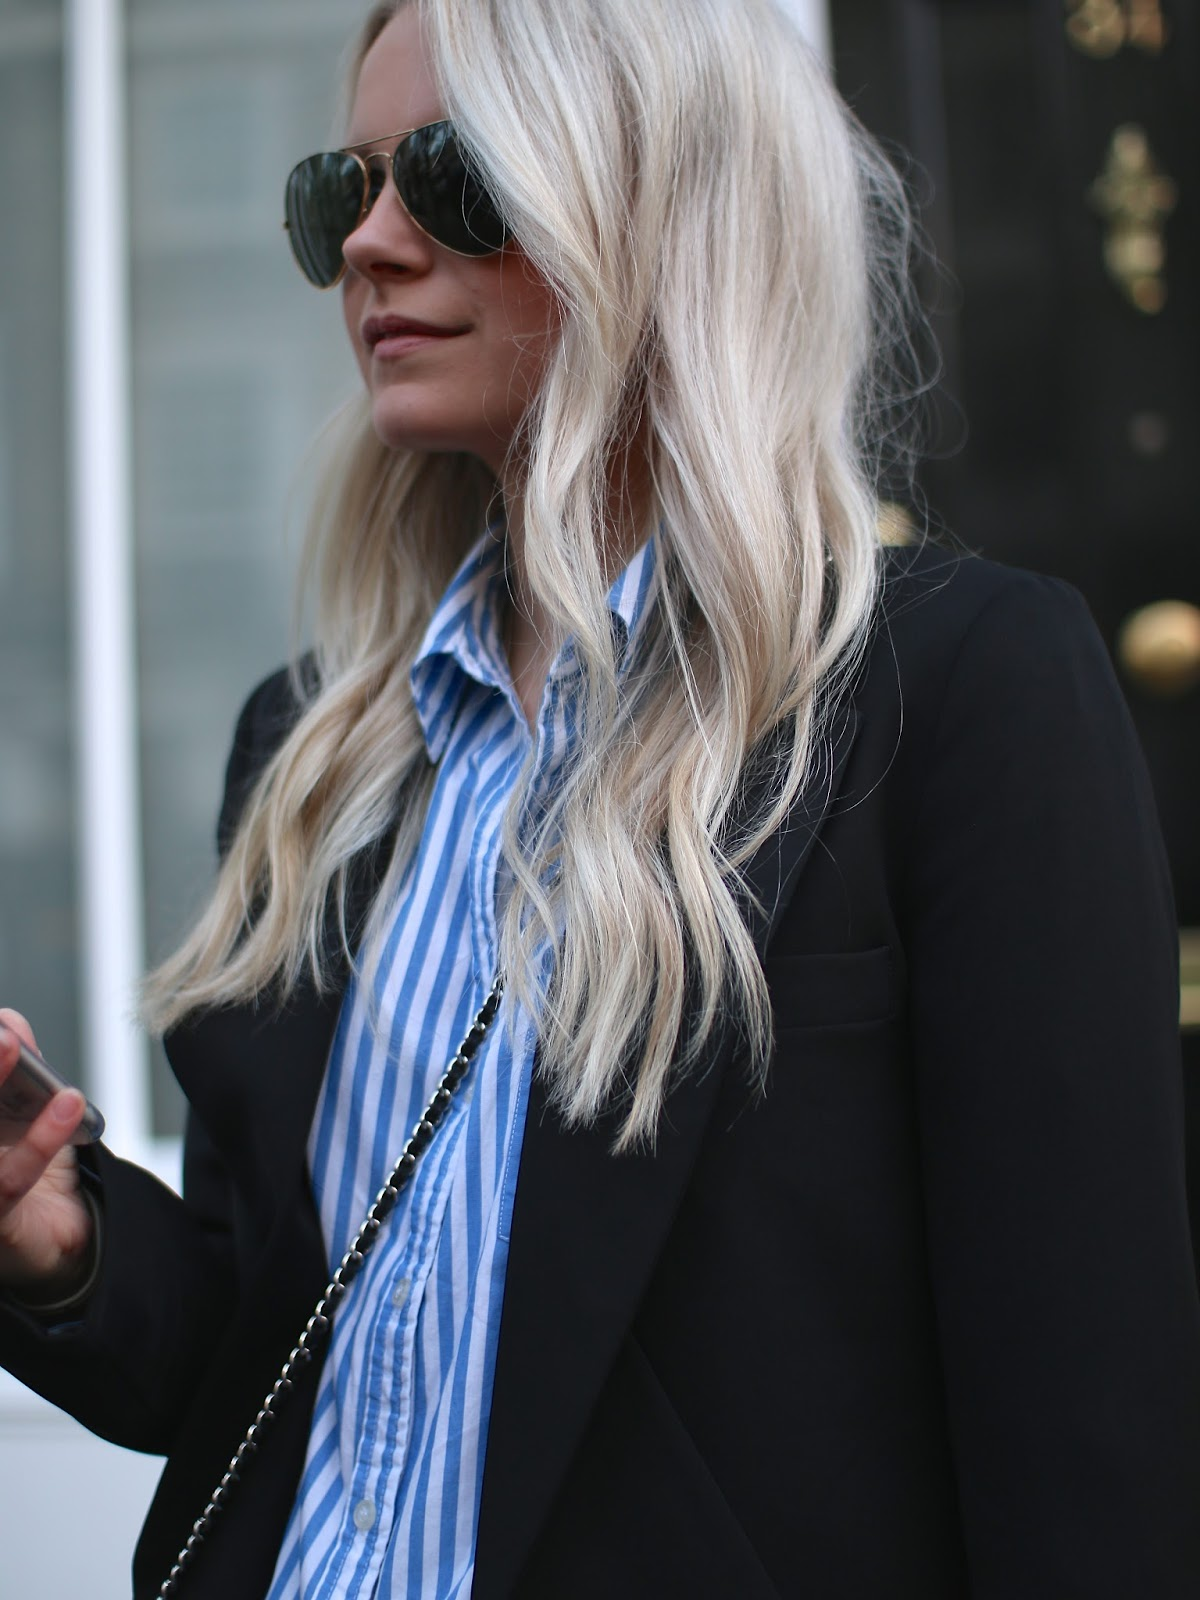 loose messy waves and pale blonde hair